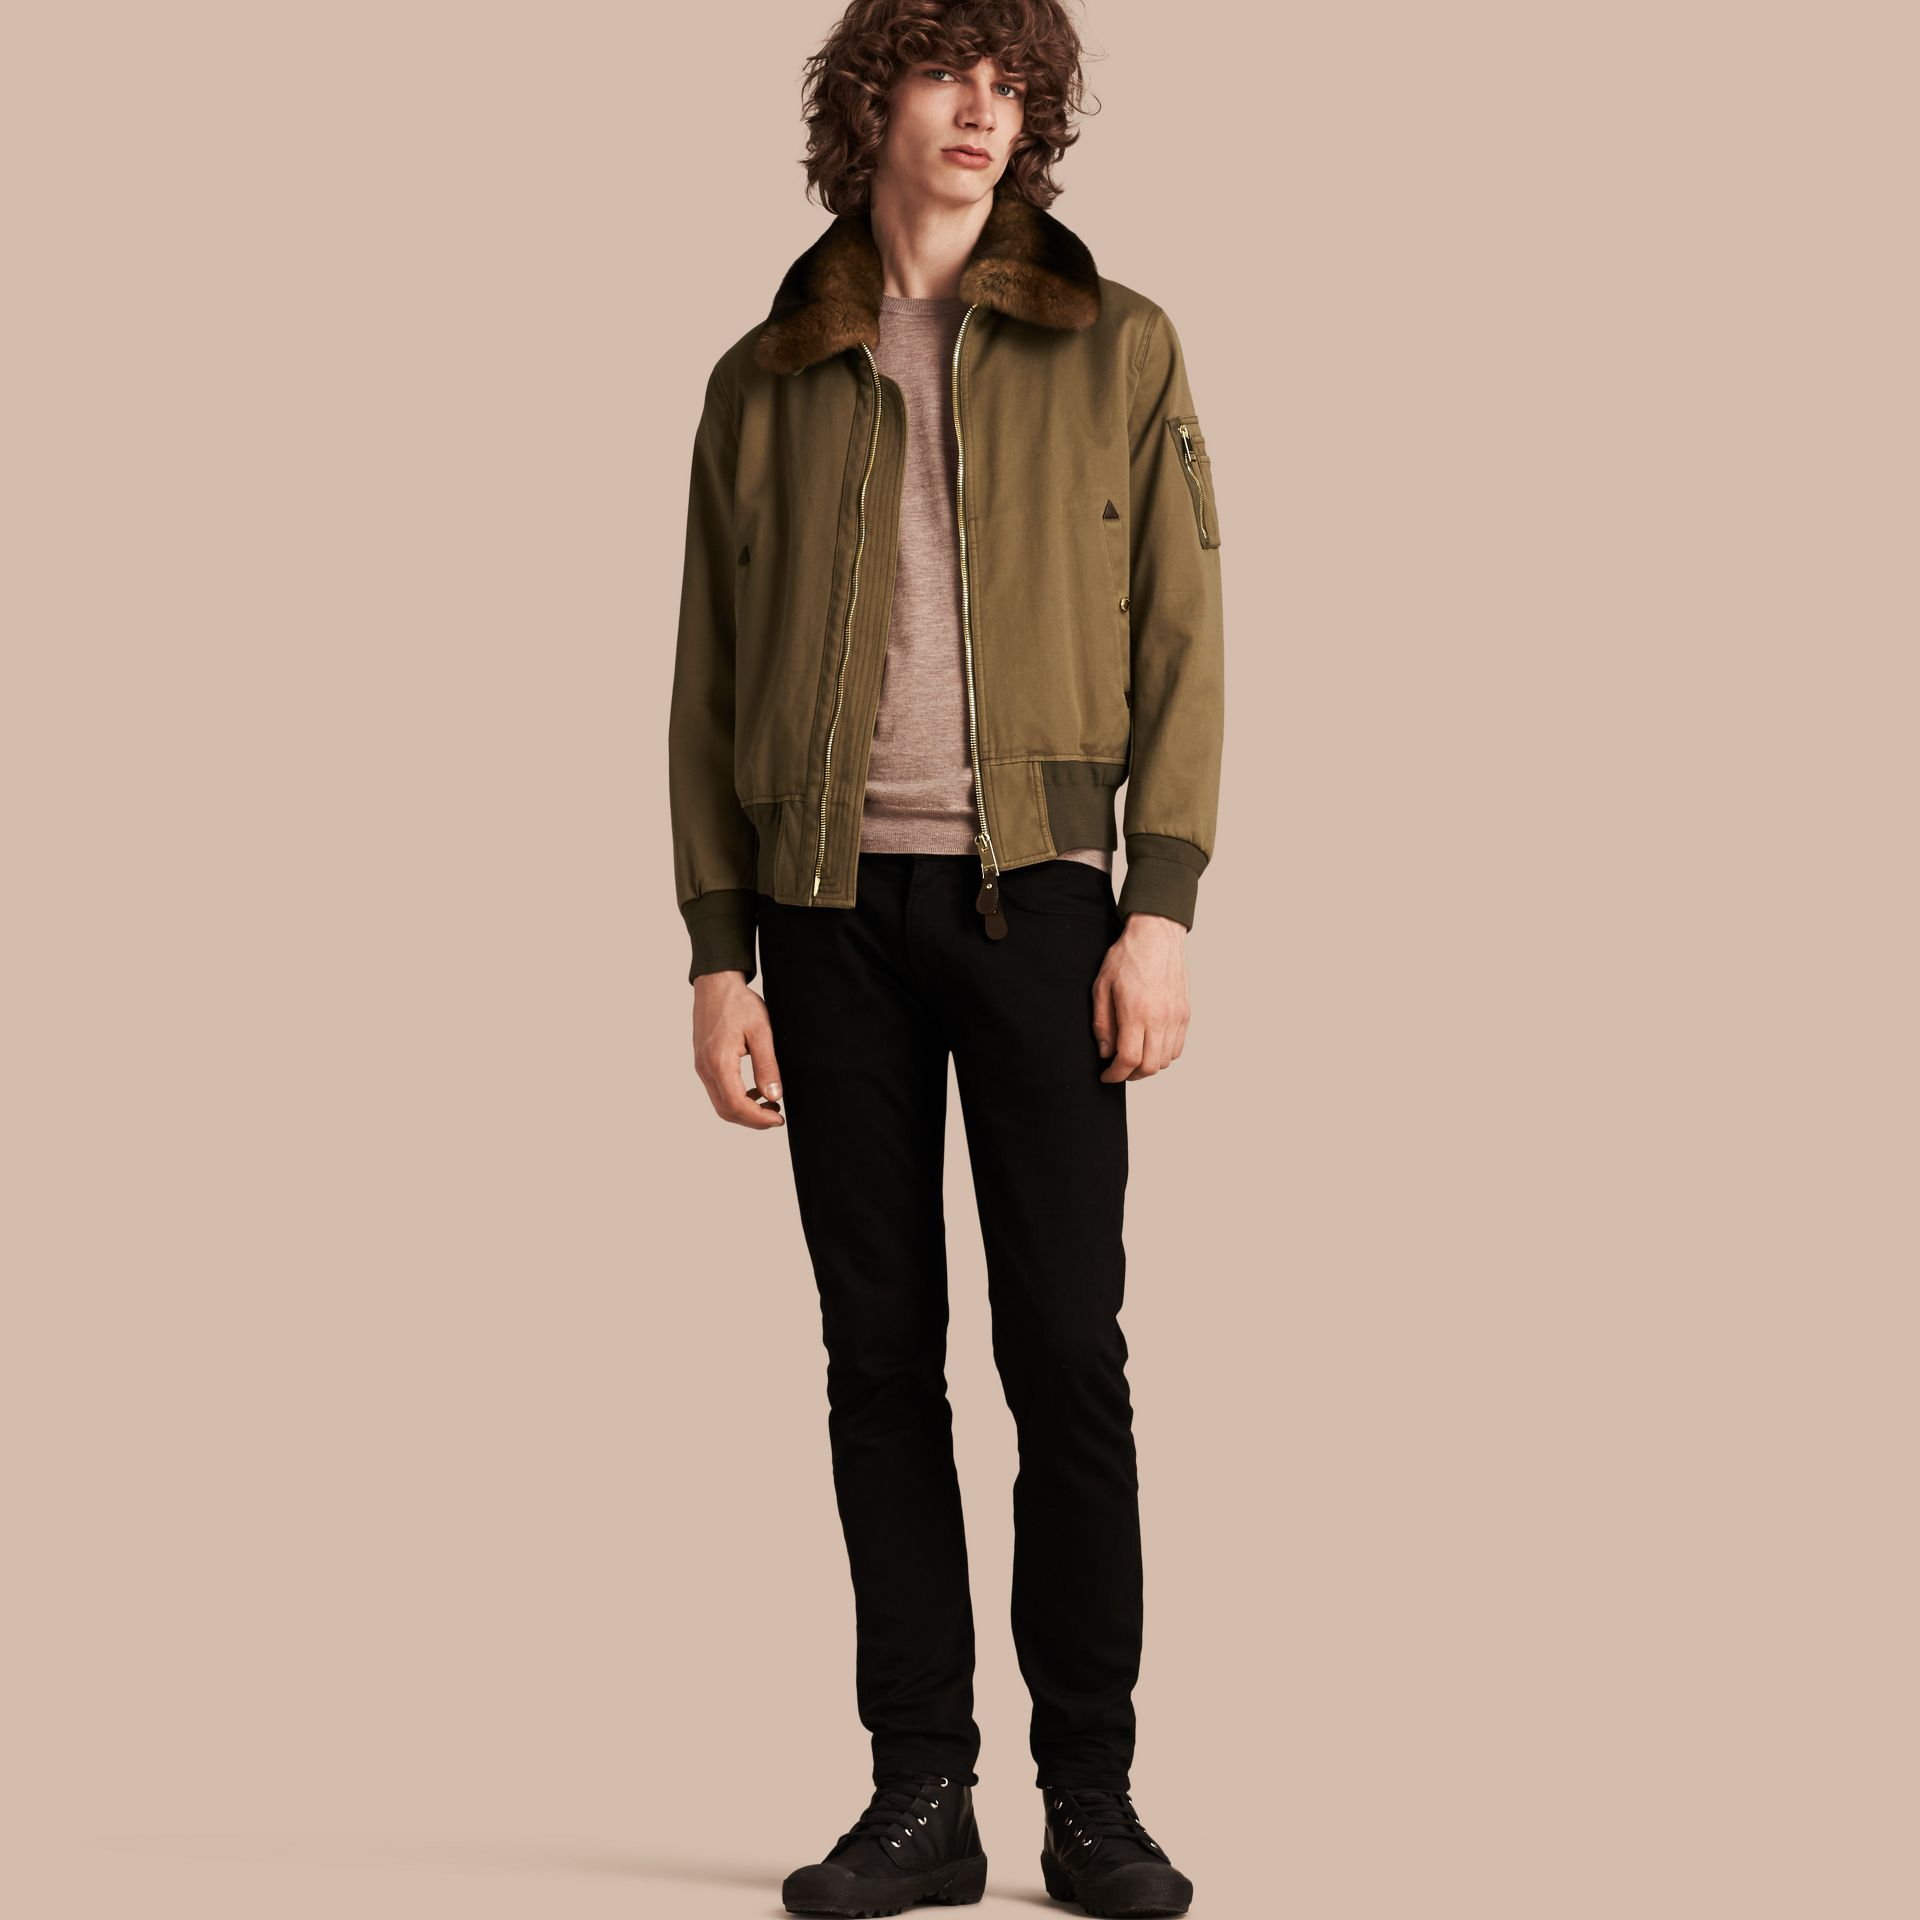 Olive green Cotton Bomber Jacket with Detachable Fur-lined Warmer - gallery image 1